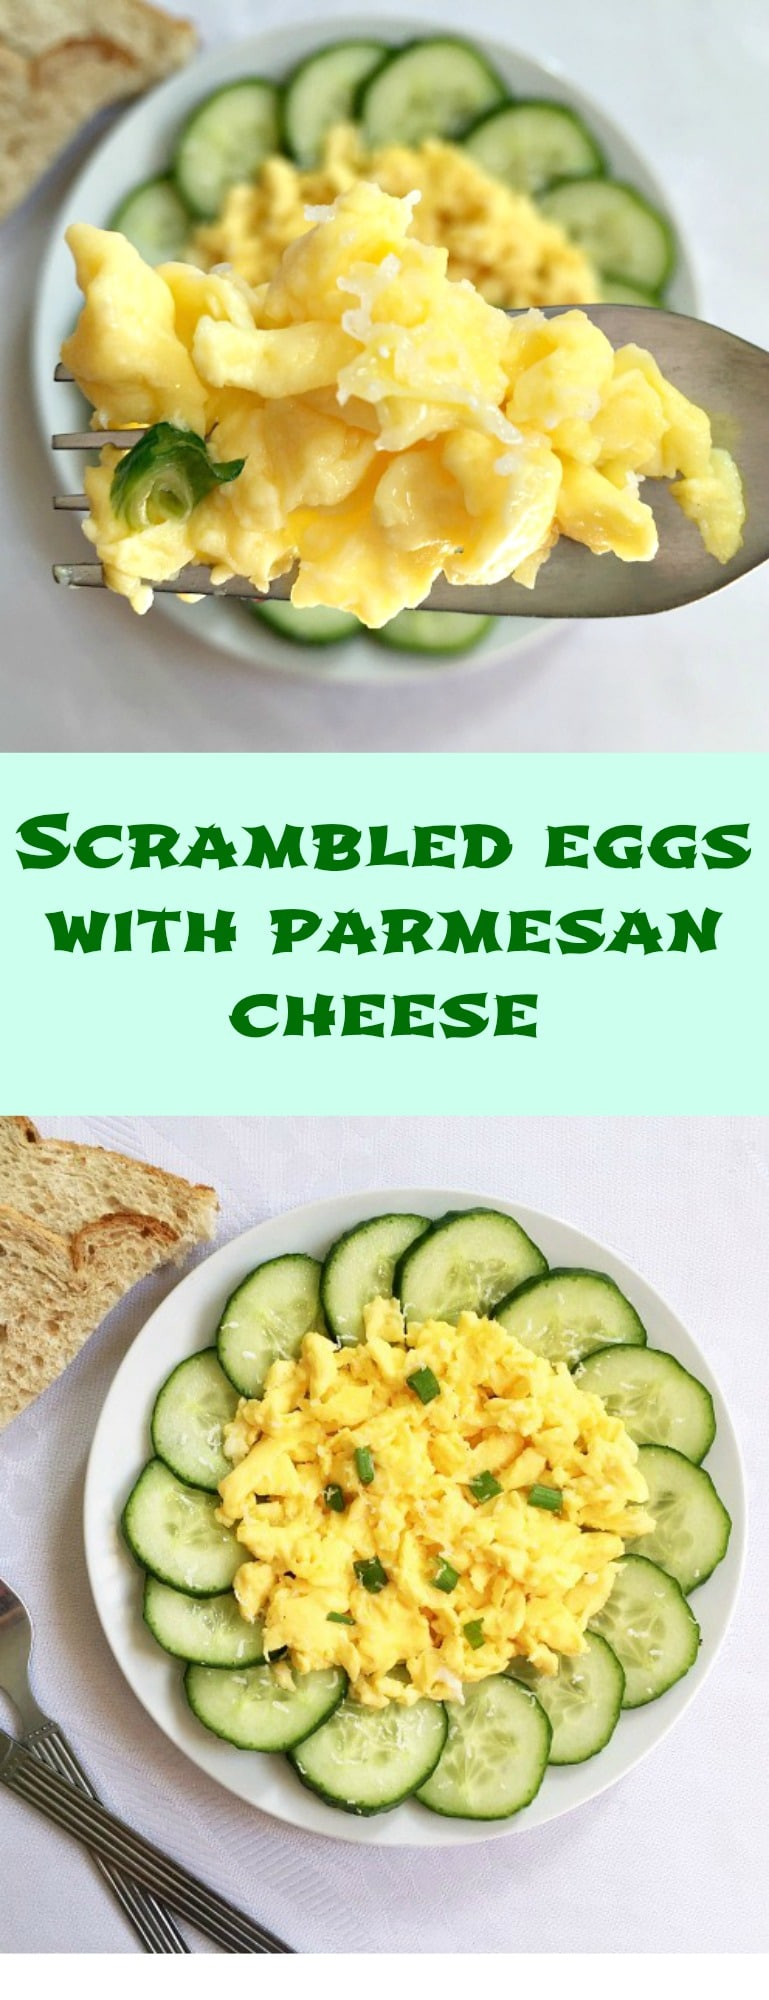 SBest scrambled eggs recipe with parmesan cheese